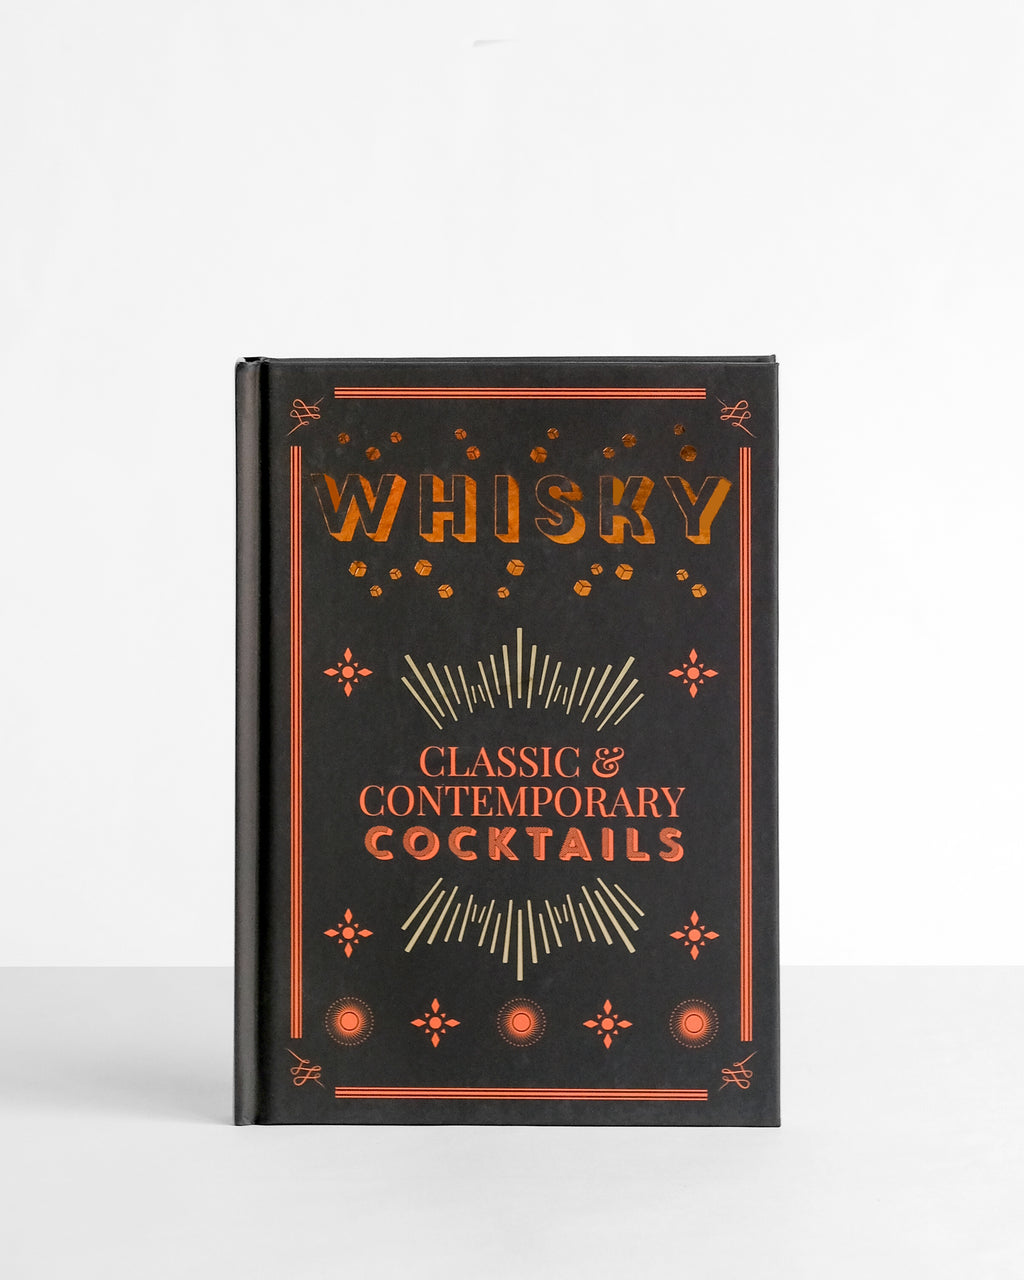 Whisky : Classic & Contemporary Cocktails